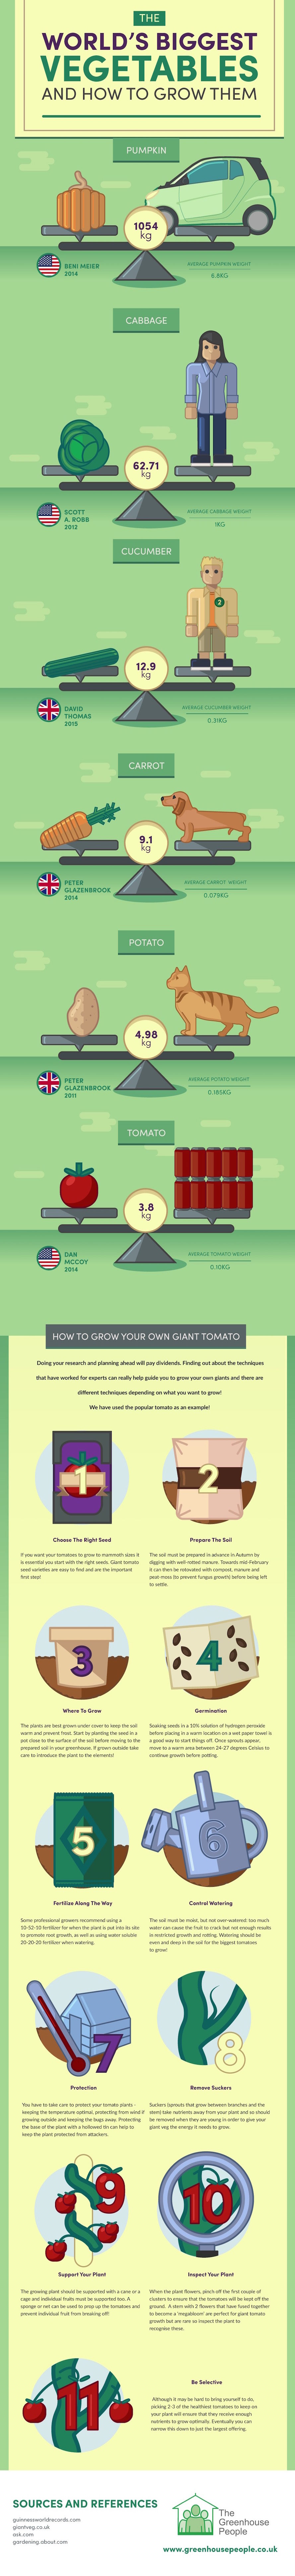 The Greenhouse People, world's biggest vegetables, reader submitted content, Guinness World Record, Beni Meier, world's largest pumpkin, how to grow big vegetables, infographic